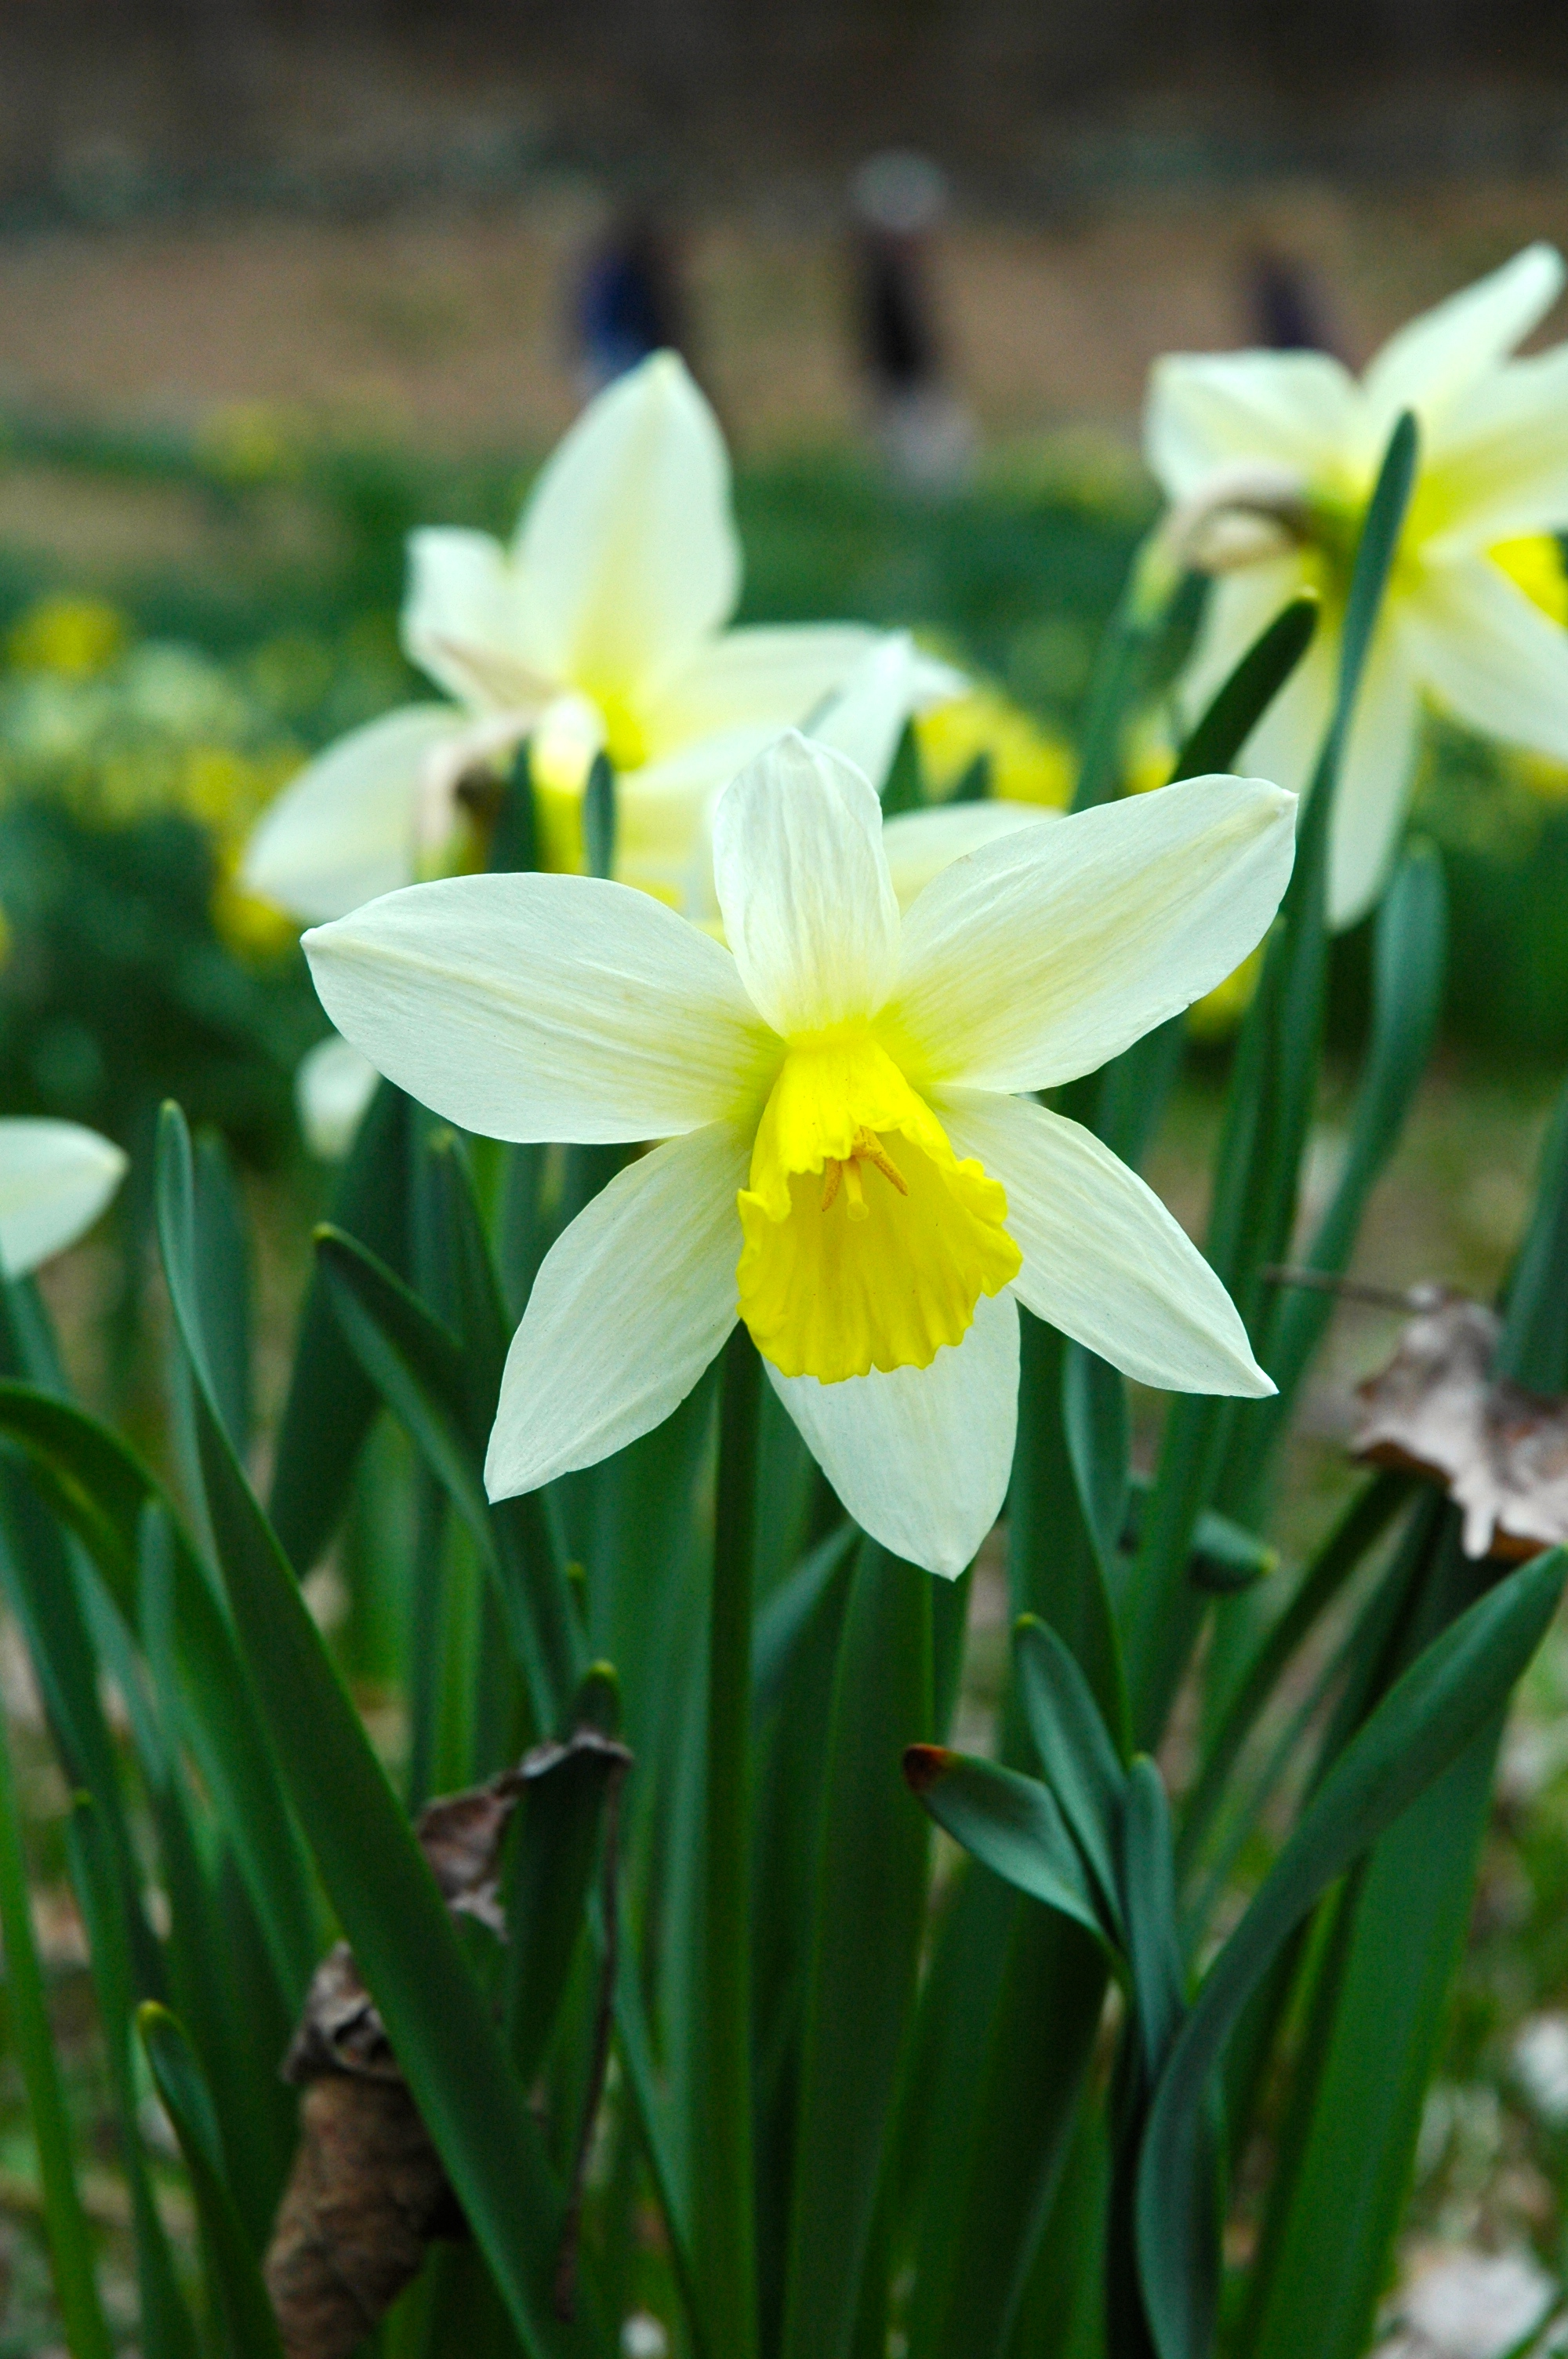 Daffodils: Wordsworth and I visit Laurel Ridge Foundation Narcissus Plantings in Litchfield, CT